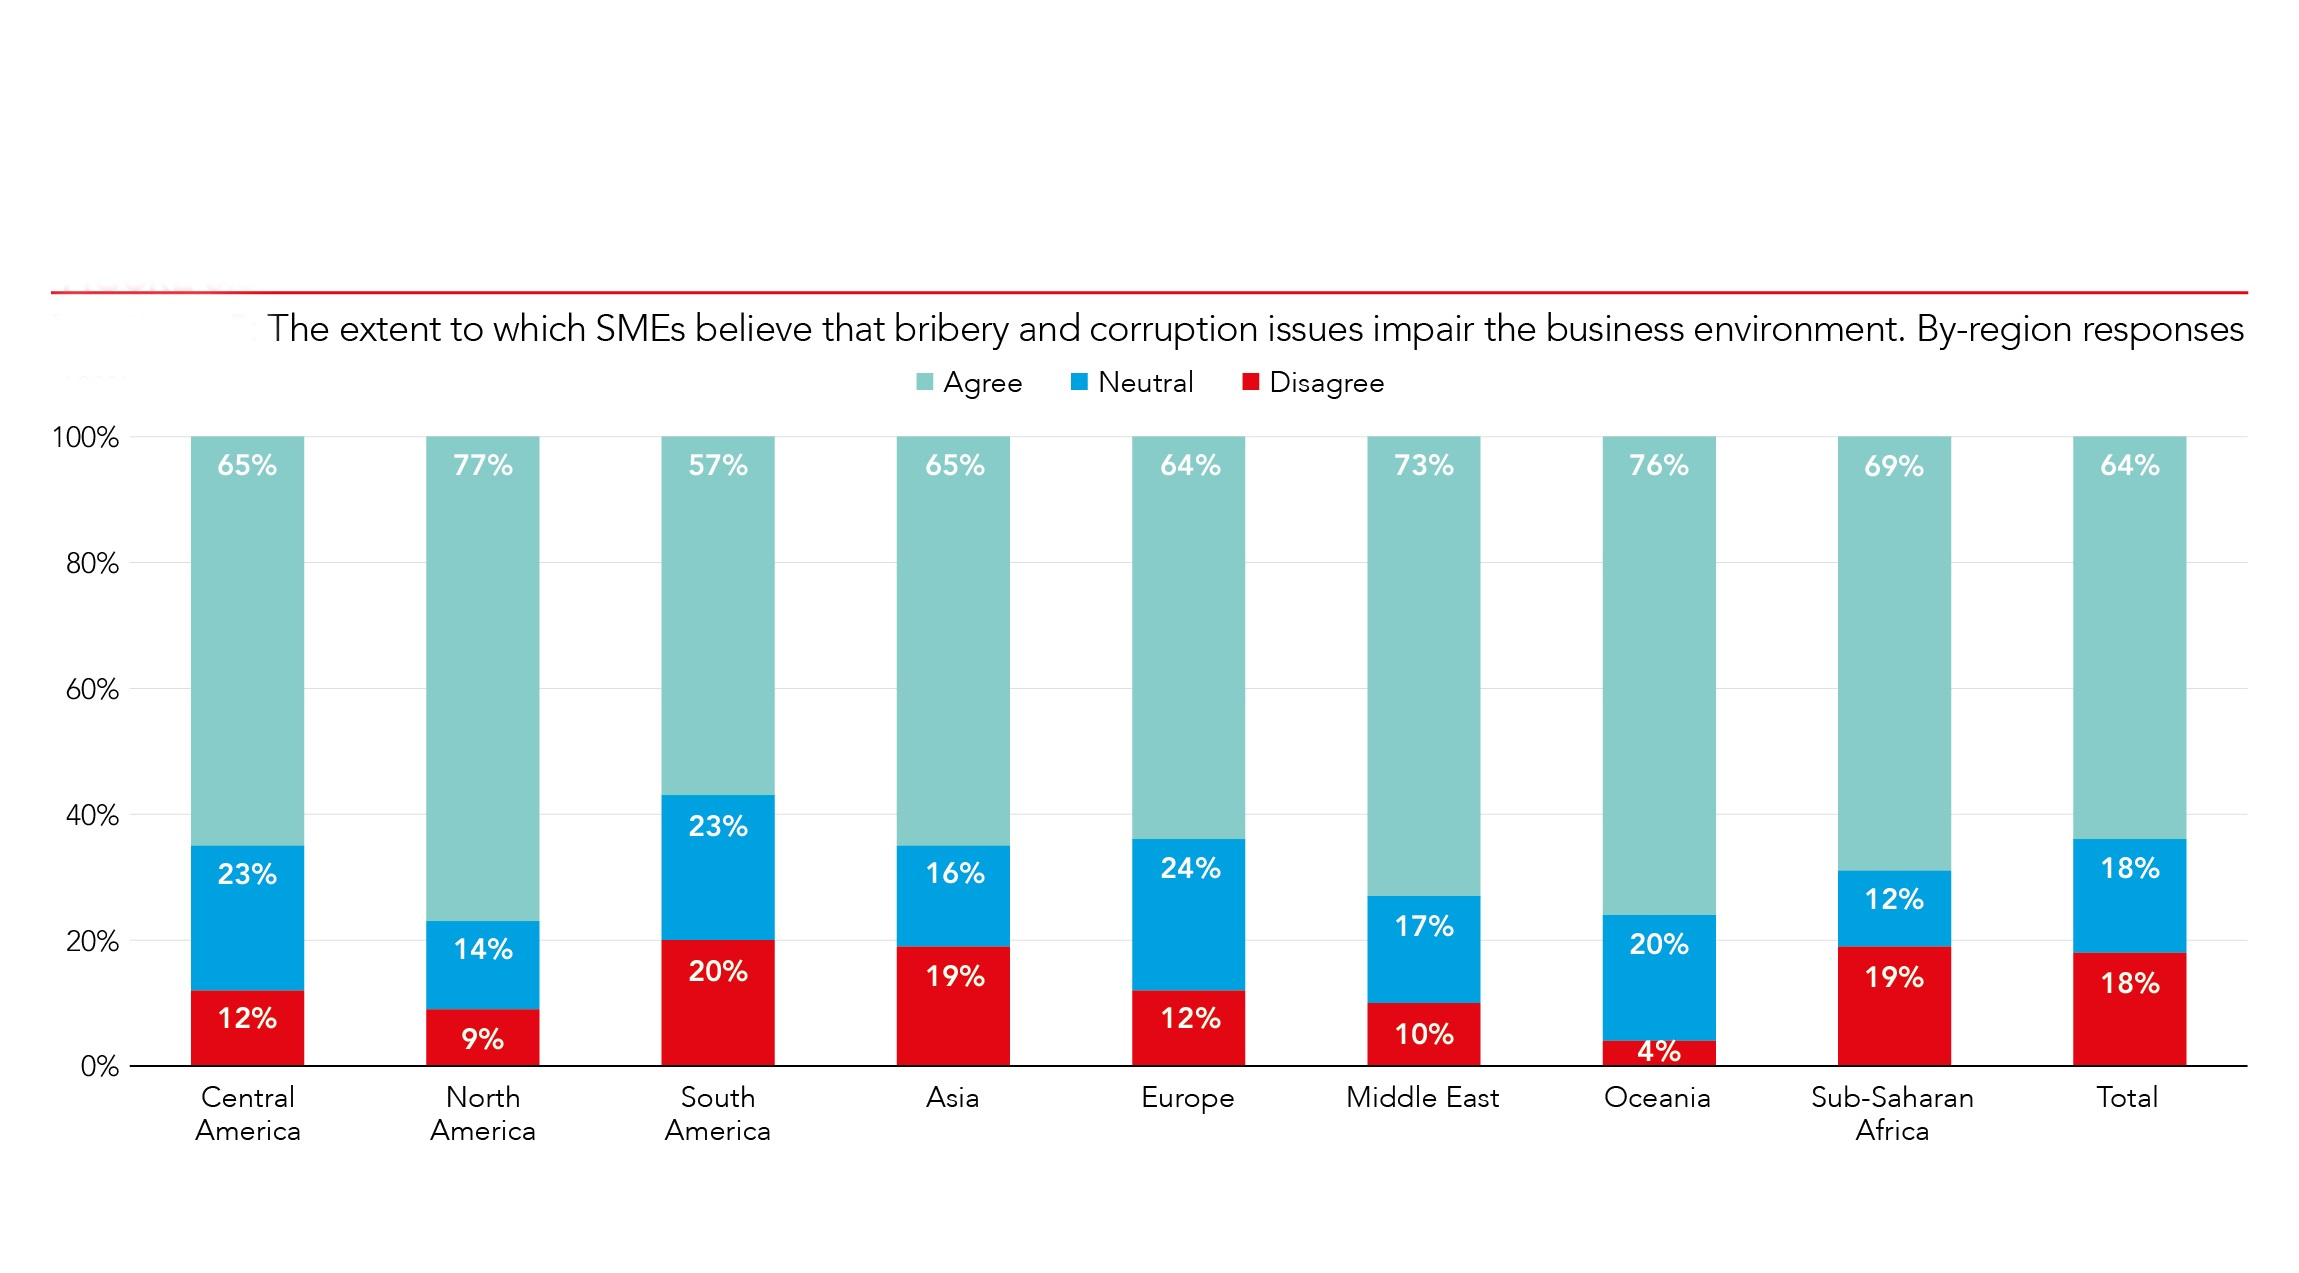 The majority (67%) of global survey respondents think that SMEs are not generally likely to come across any risk of bribery and corruption in the course of their business dealings, although this figure masks significant regional variations. Only in Central America did respondents who claimed that SMEs would not encounter bribery and corruption outnumber those who thought it likely, at 37% to 27%, whereas in sub-Saharan Africa the results were 10% to 86%.